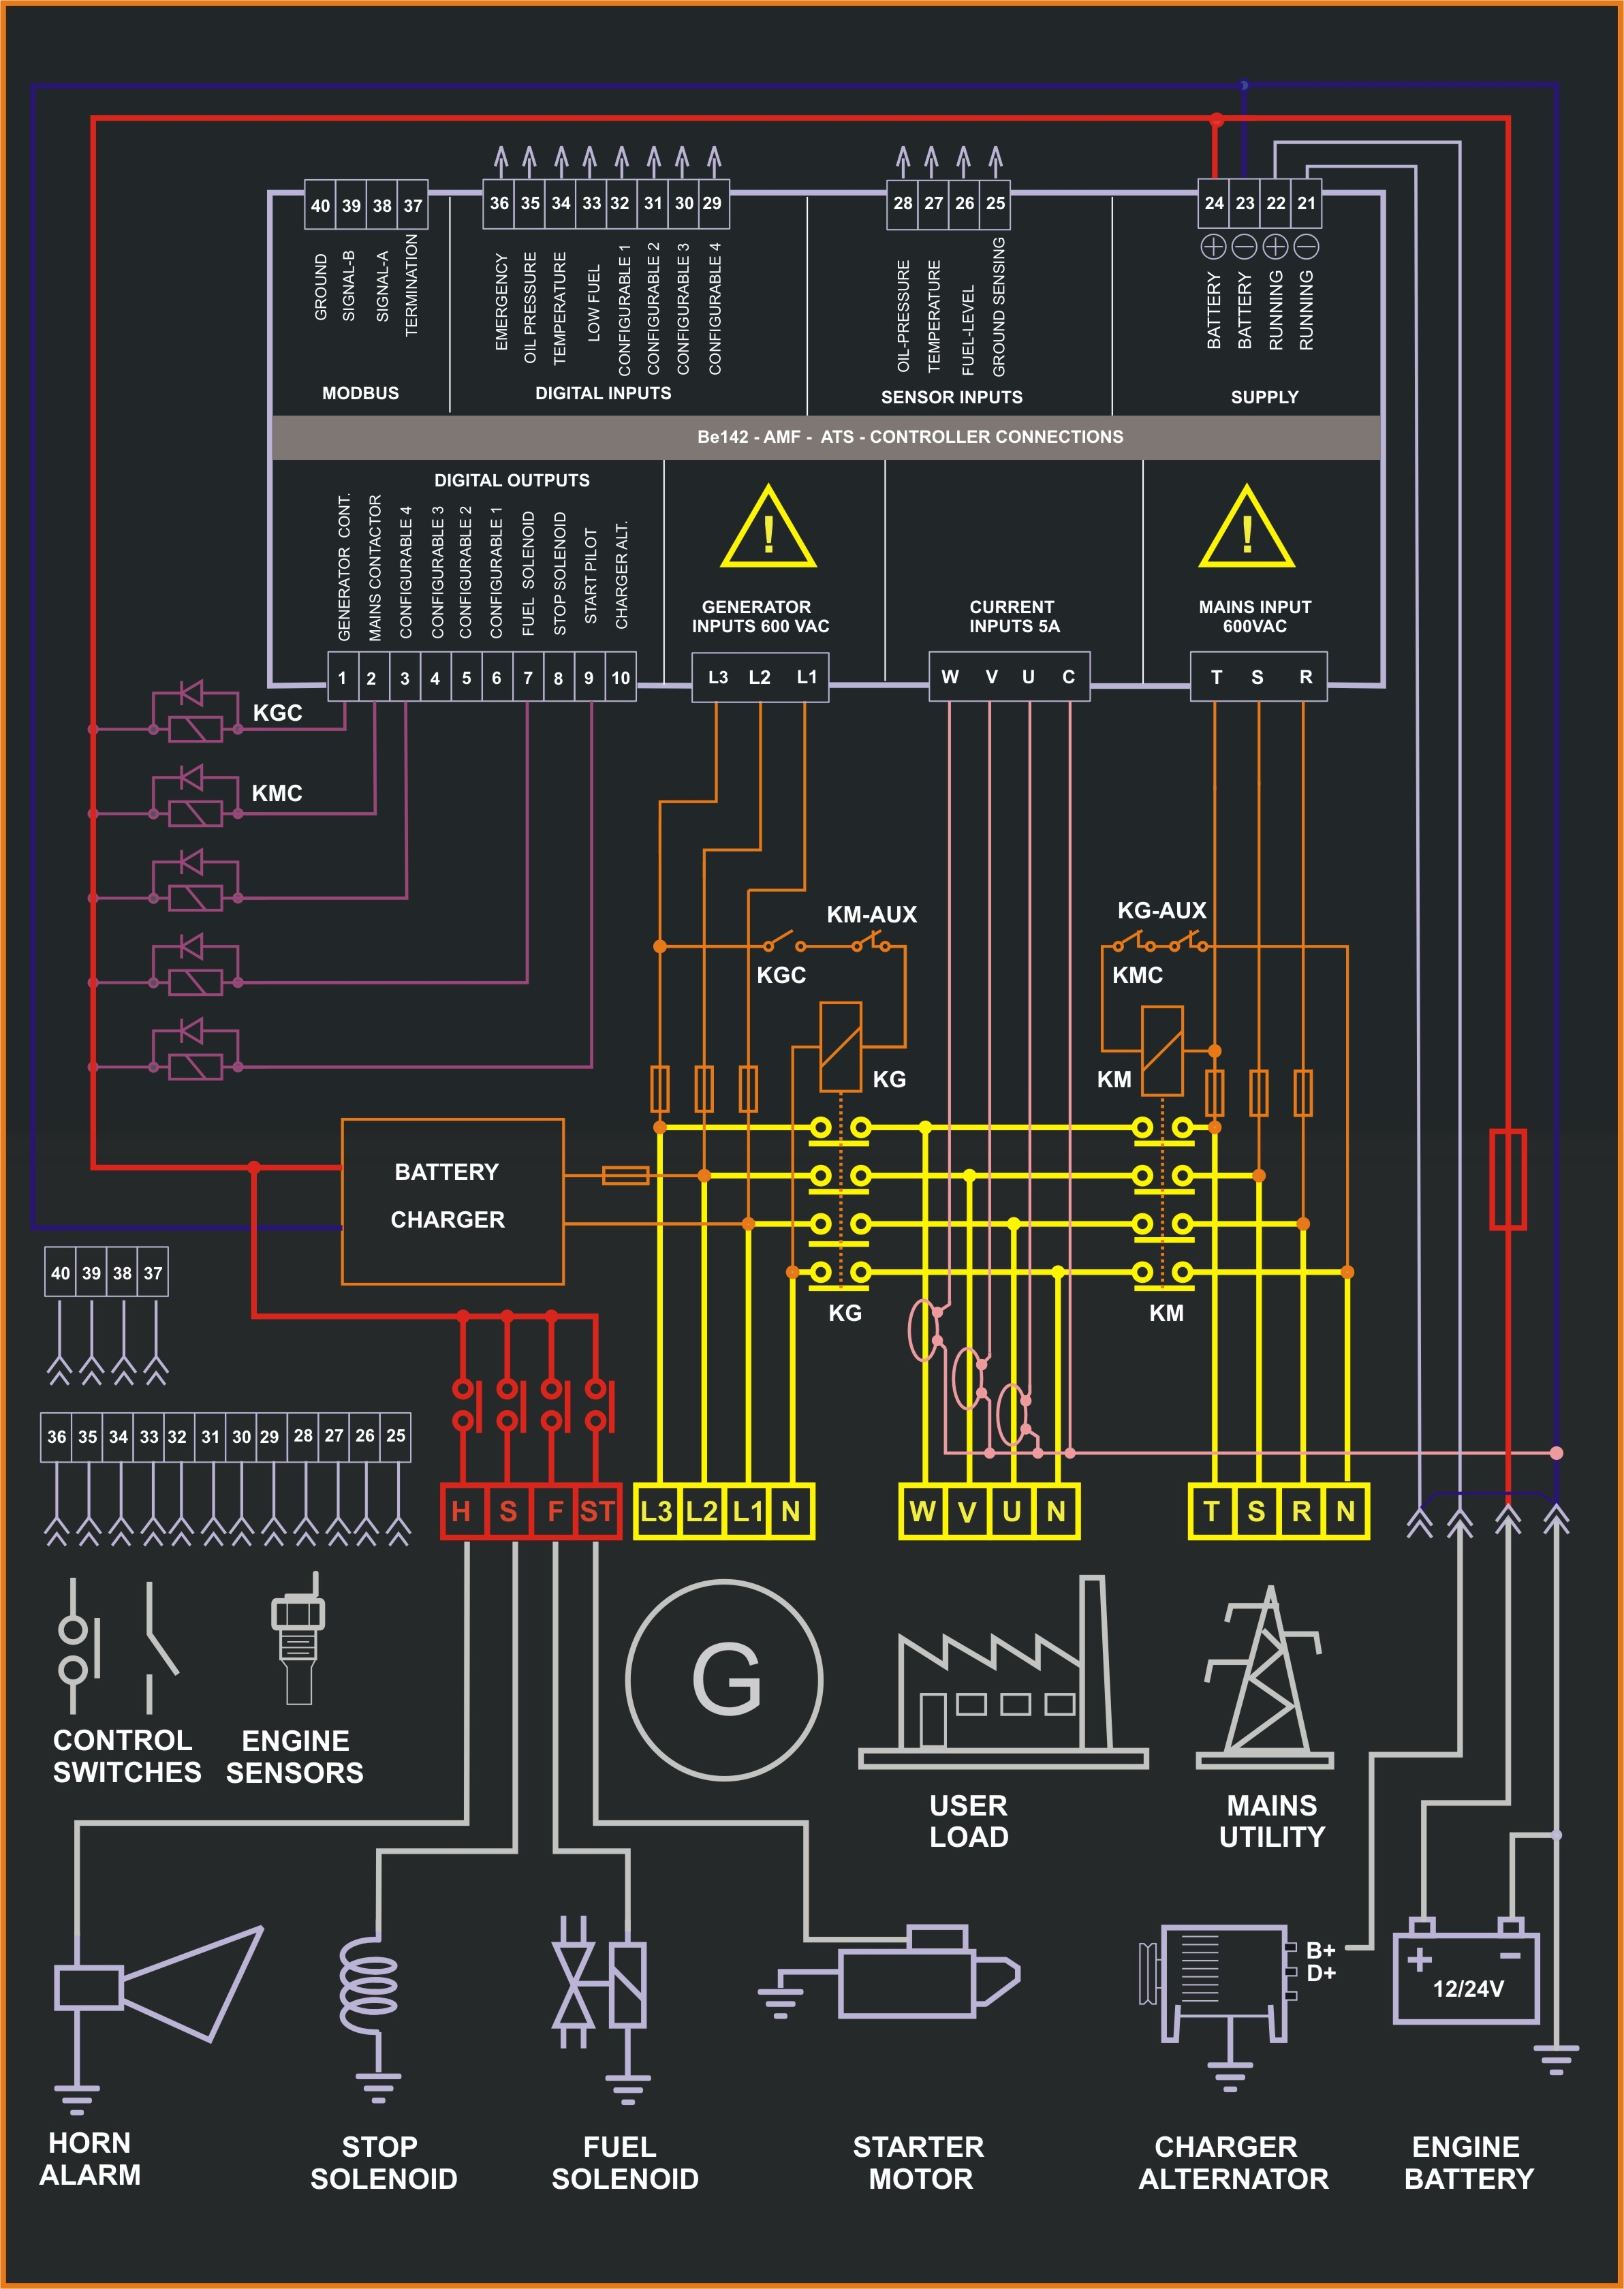 [DIAGRAM_09CH]  GO_8708] Panel Wiring Diagram In This Diesel Generator Control Panel Wiring  Schematic Wiring | Wiring Panel Diagram |  | Llonu Phae Mohammedshrine Librar Wiring 101